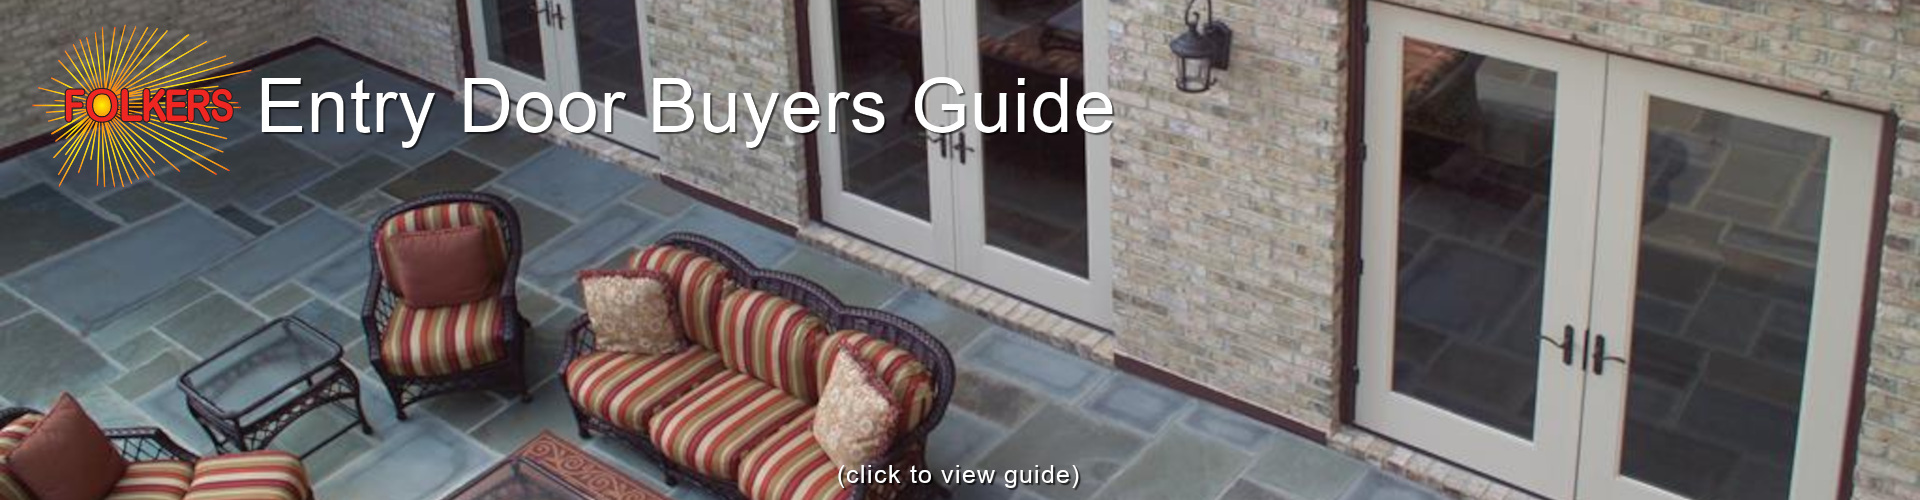 Folkers, Buying Guides, Entry Door Buying Guide